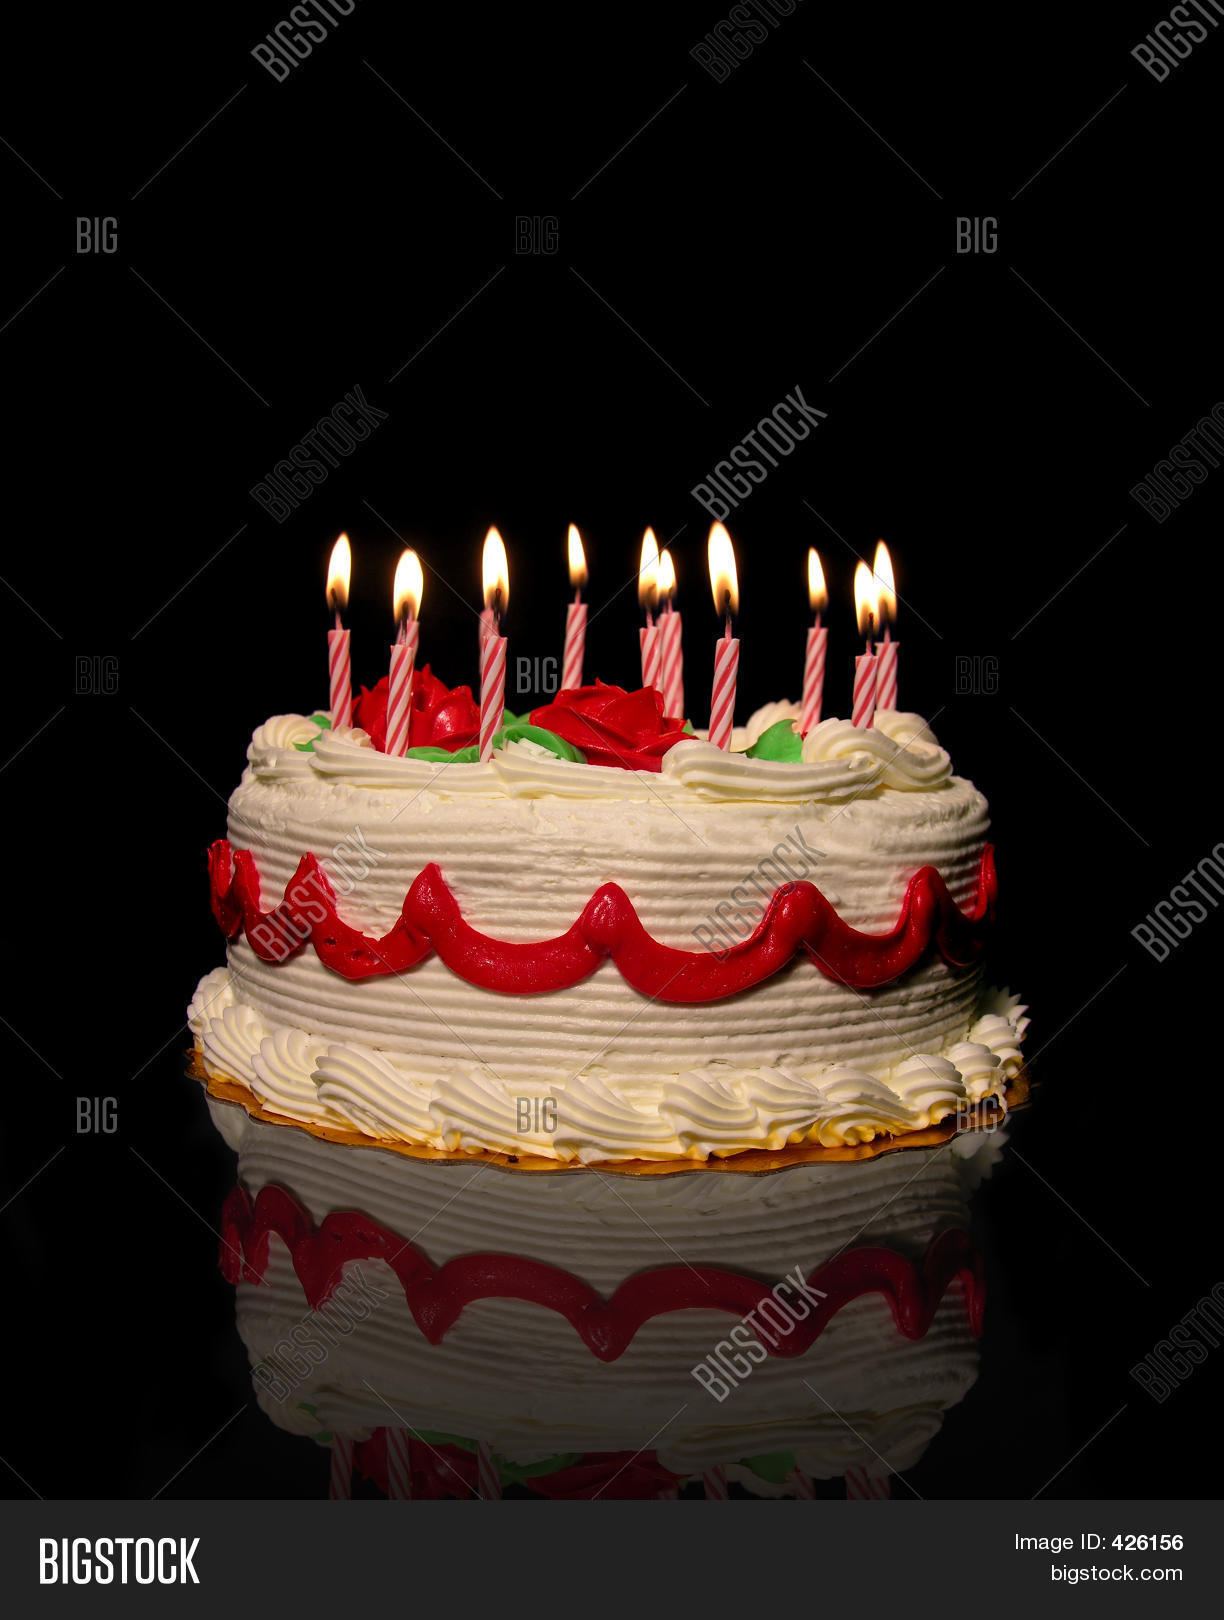 Birthday Cake Image & Photo (Free Trial) | Bigstock